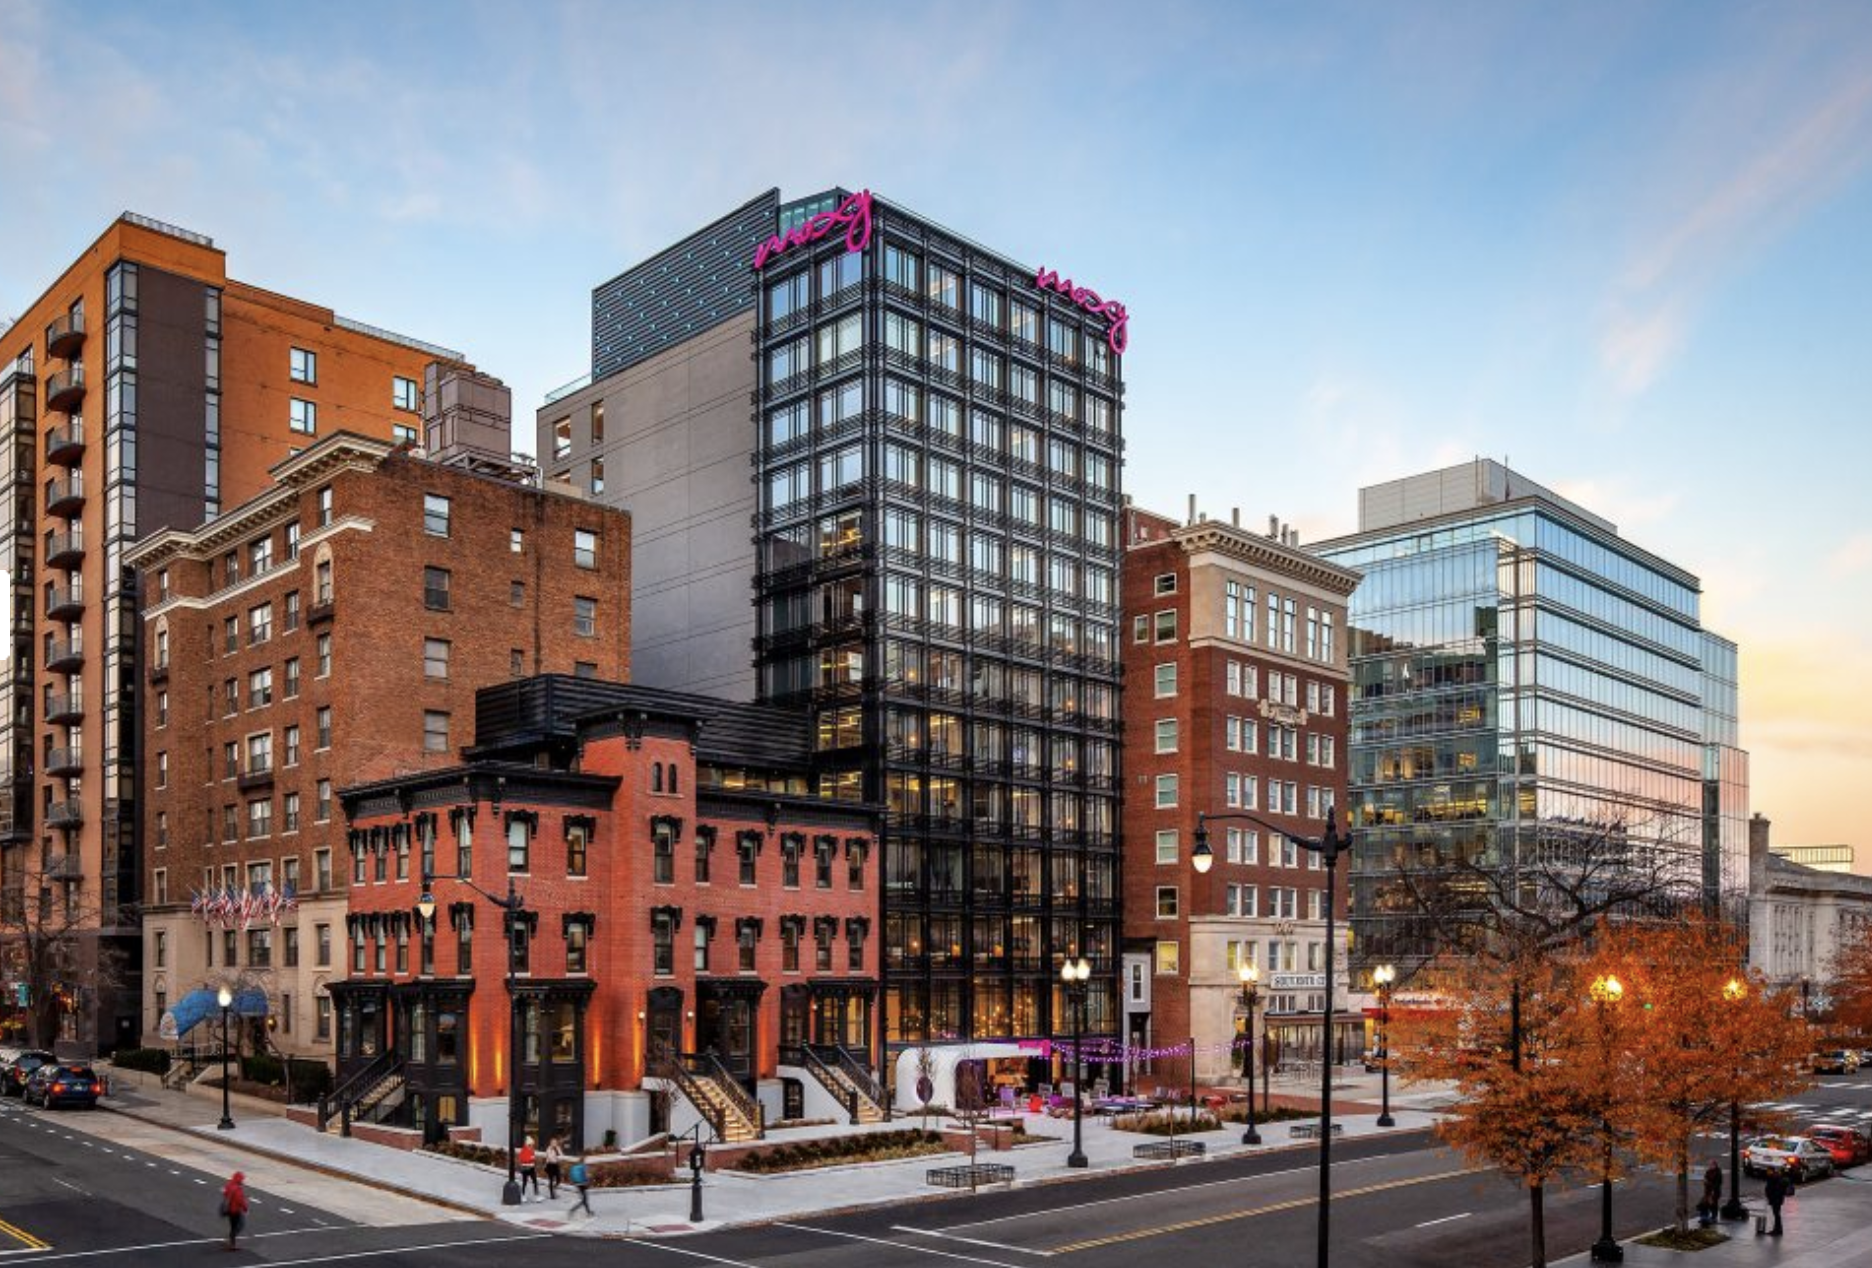 The historic building attached to the Moxy hotel at 11th and K Streets NW is slated to house a restaurant and rooftop bar from Atlas Restaurant Group